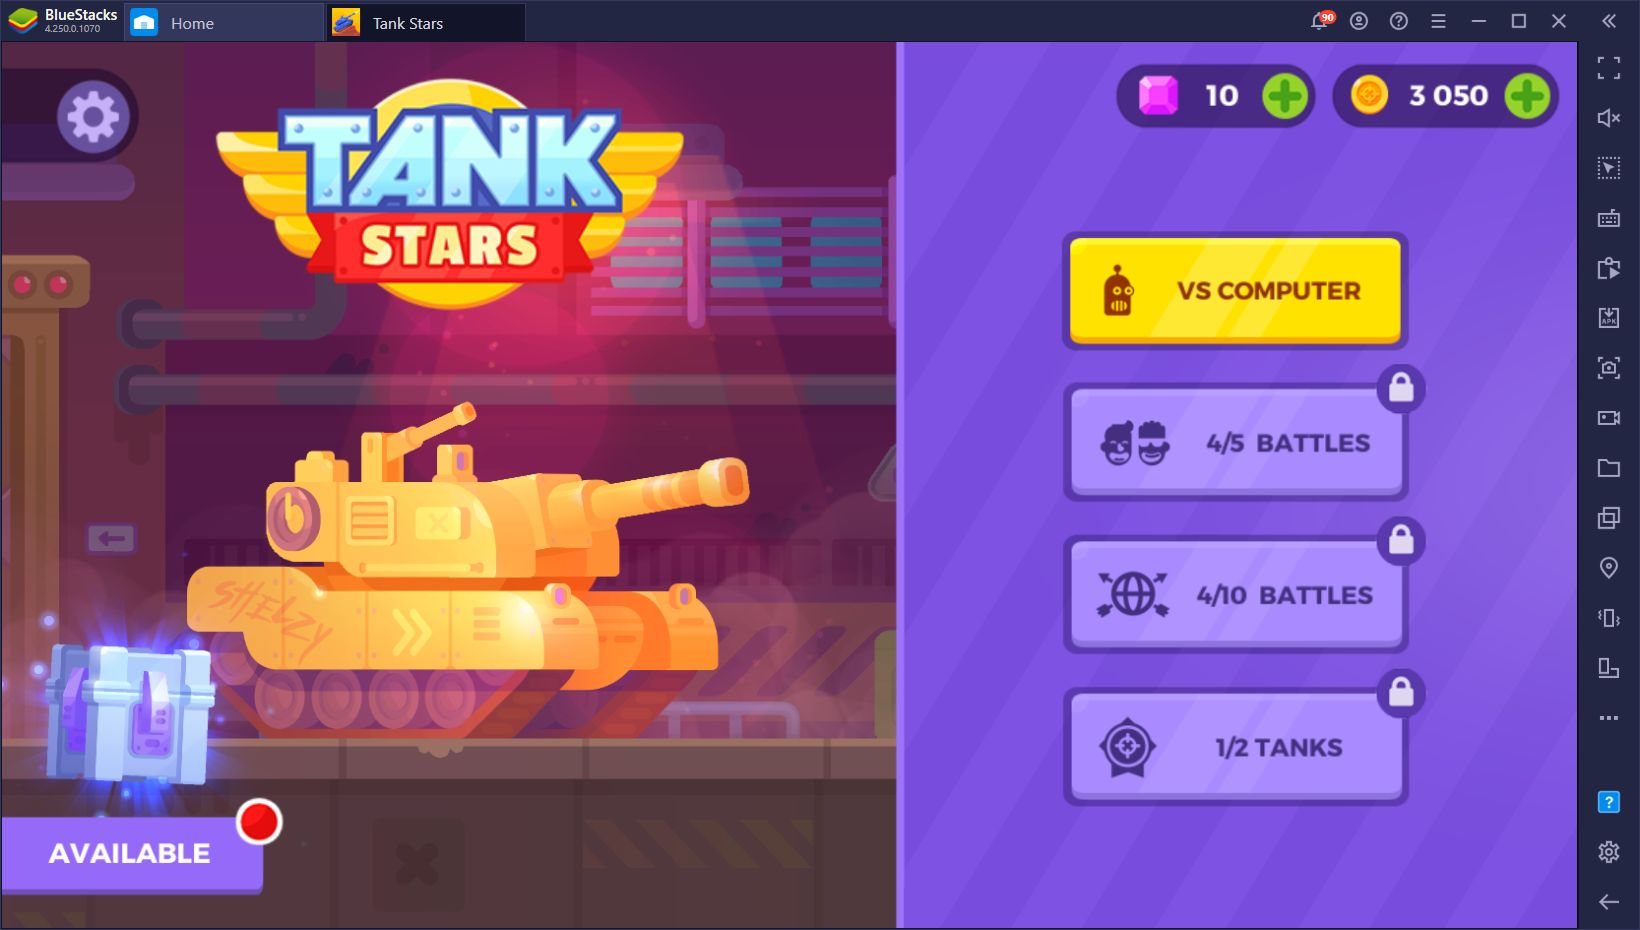 How to Play Tank Stars on PC with BlueStacks